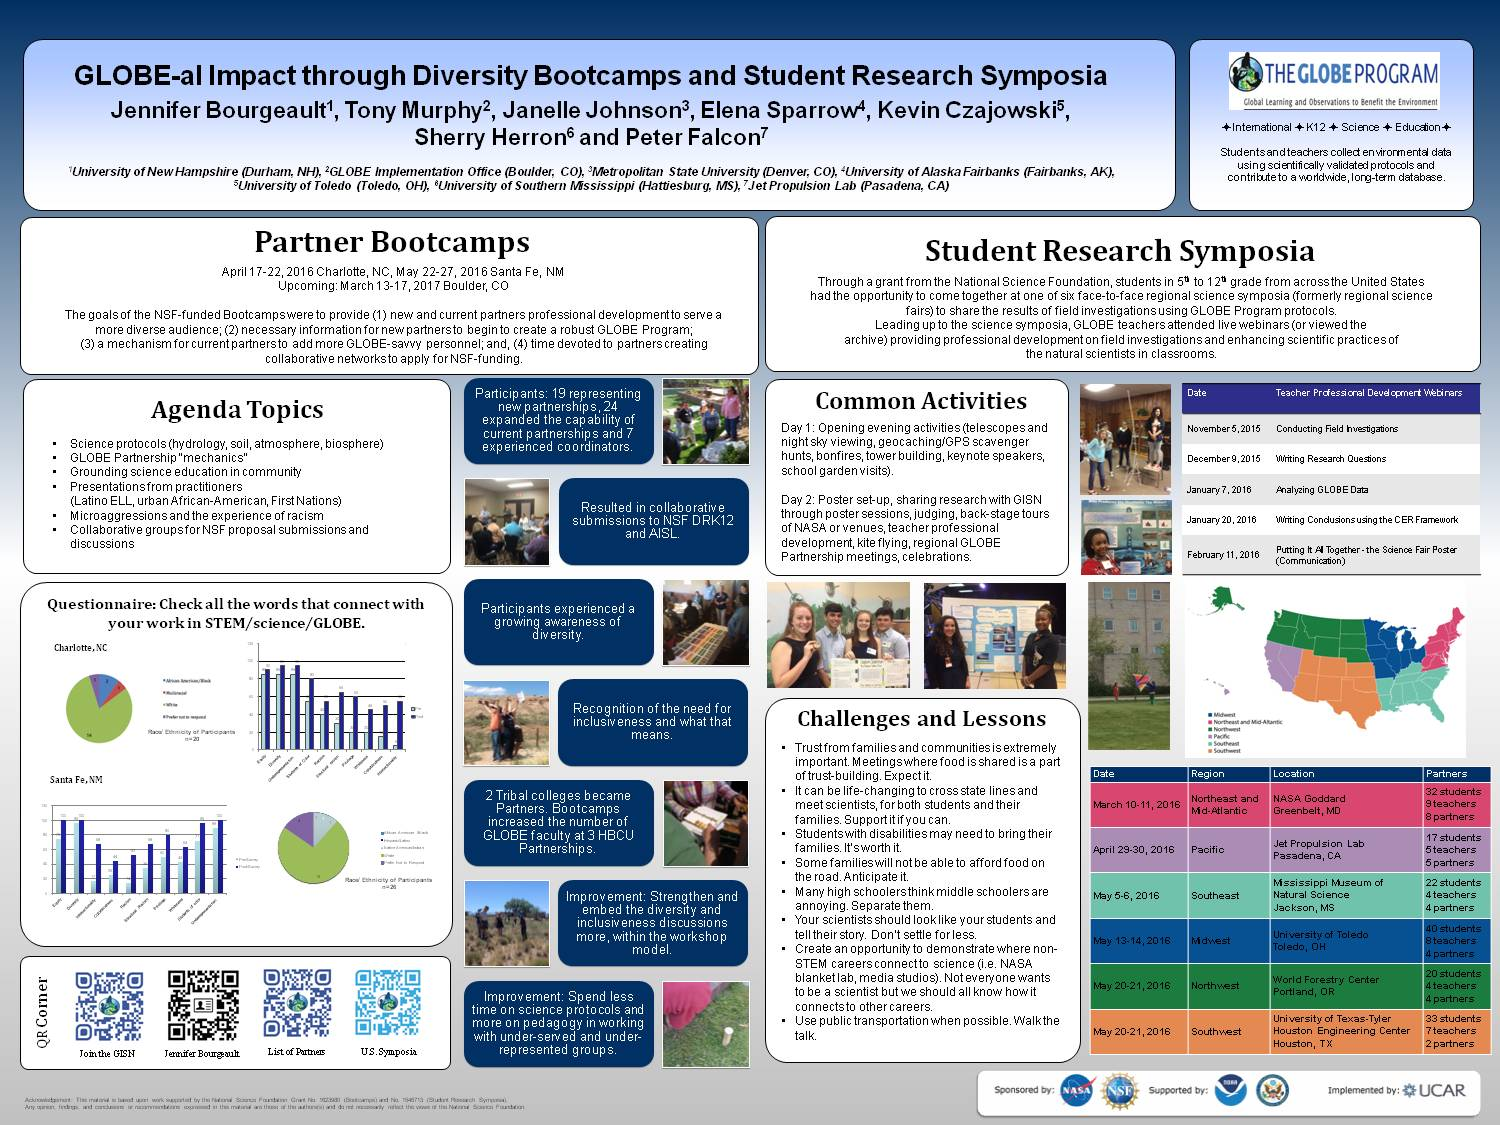 Globe-Al Impact Through Diversity Bootcamps And Student Research Symposia by jlhagen